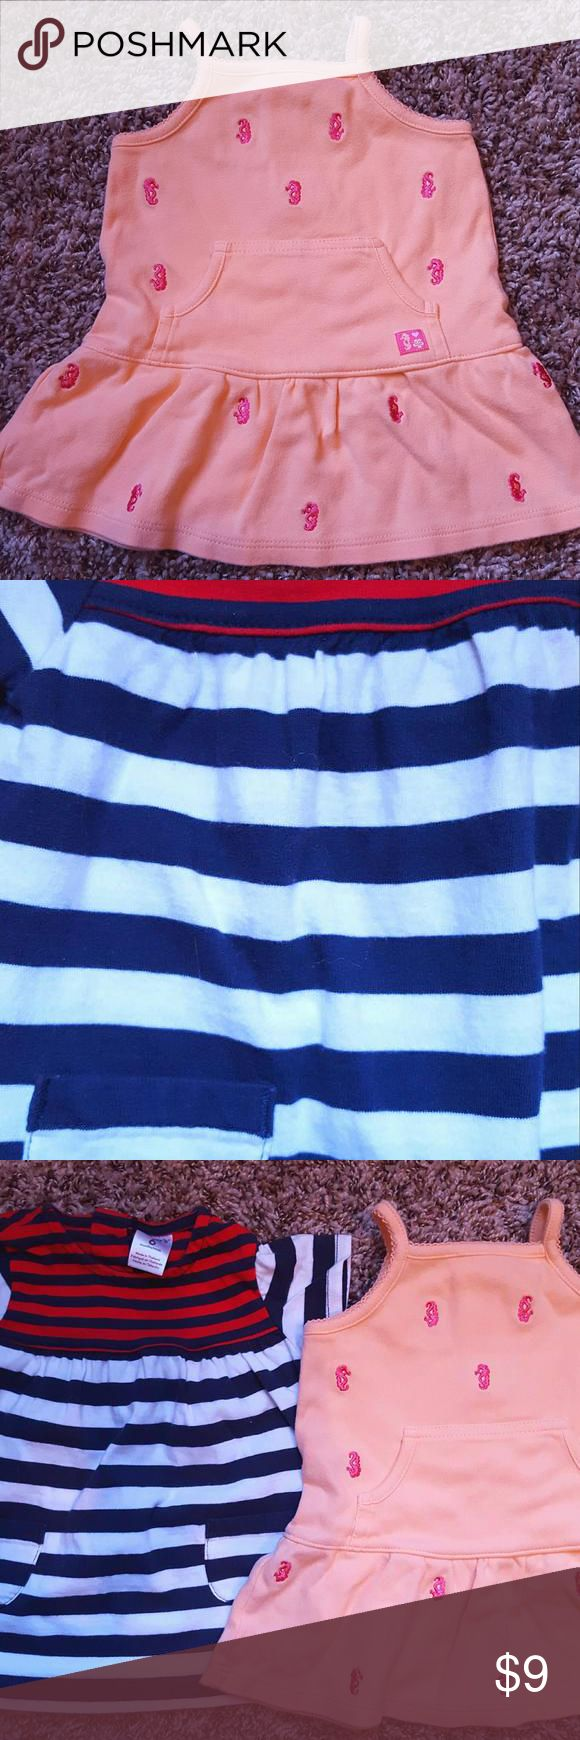 2 Carter's Dresses seahorse, striped Tot-27 -Peach seahorse embroidered dress -red white blue striped dress  By Carter's  6m  sea horse-No rips, holes or stains.  Striped-No rips or holes.  Has area of light orange at top. Normal wash n wear fluff/ fading. Carters Dresses